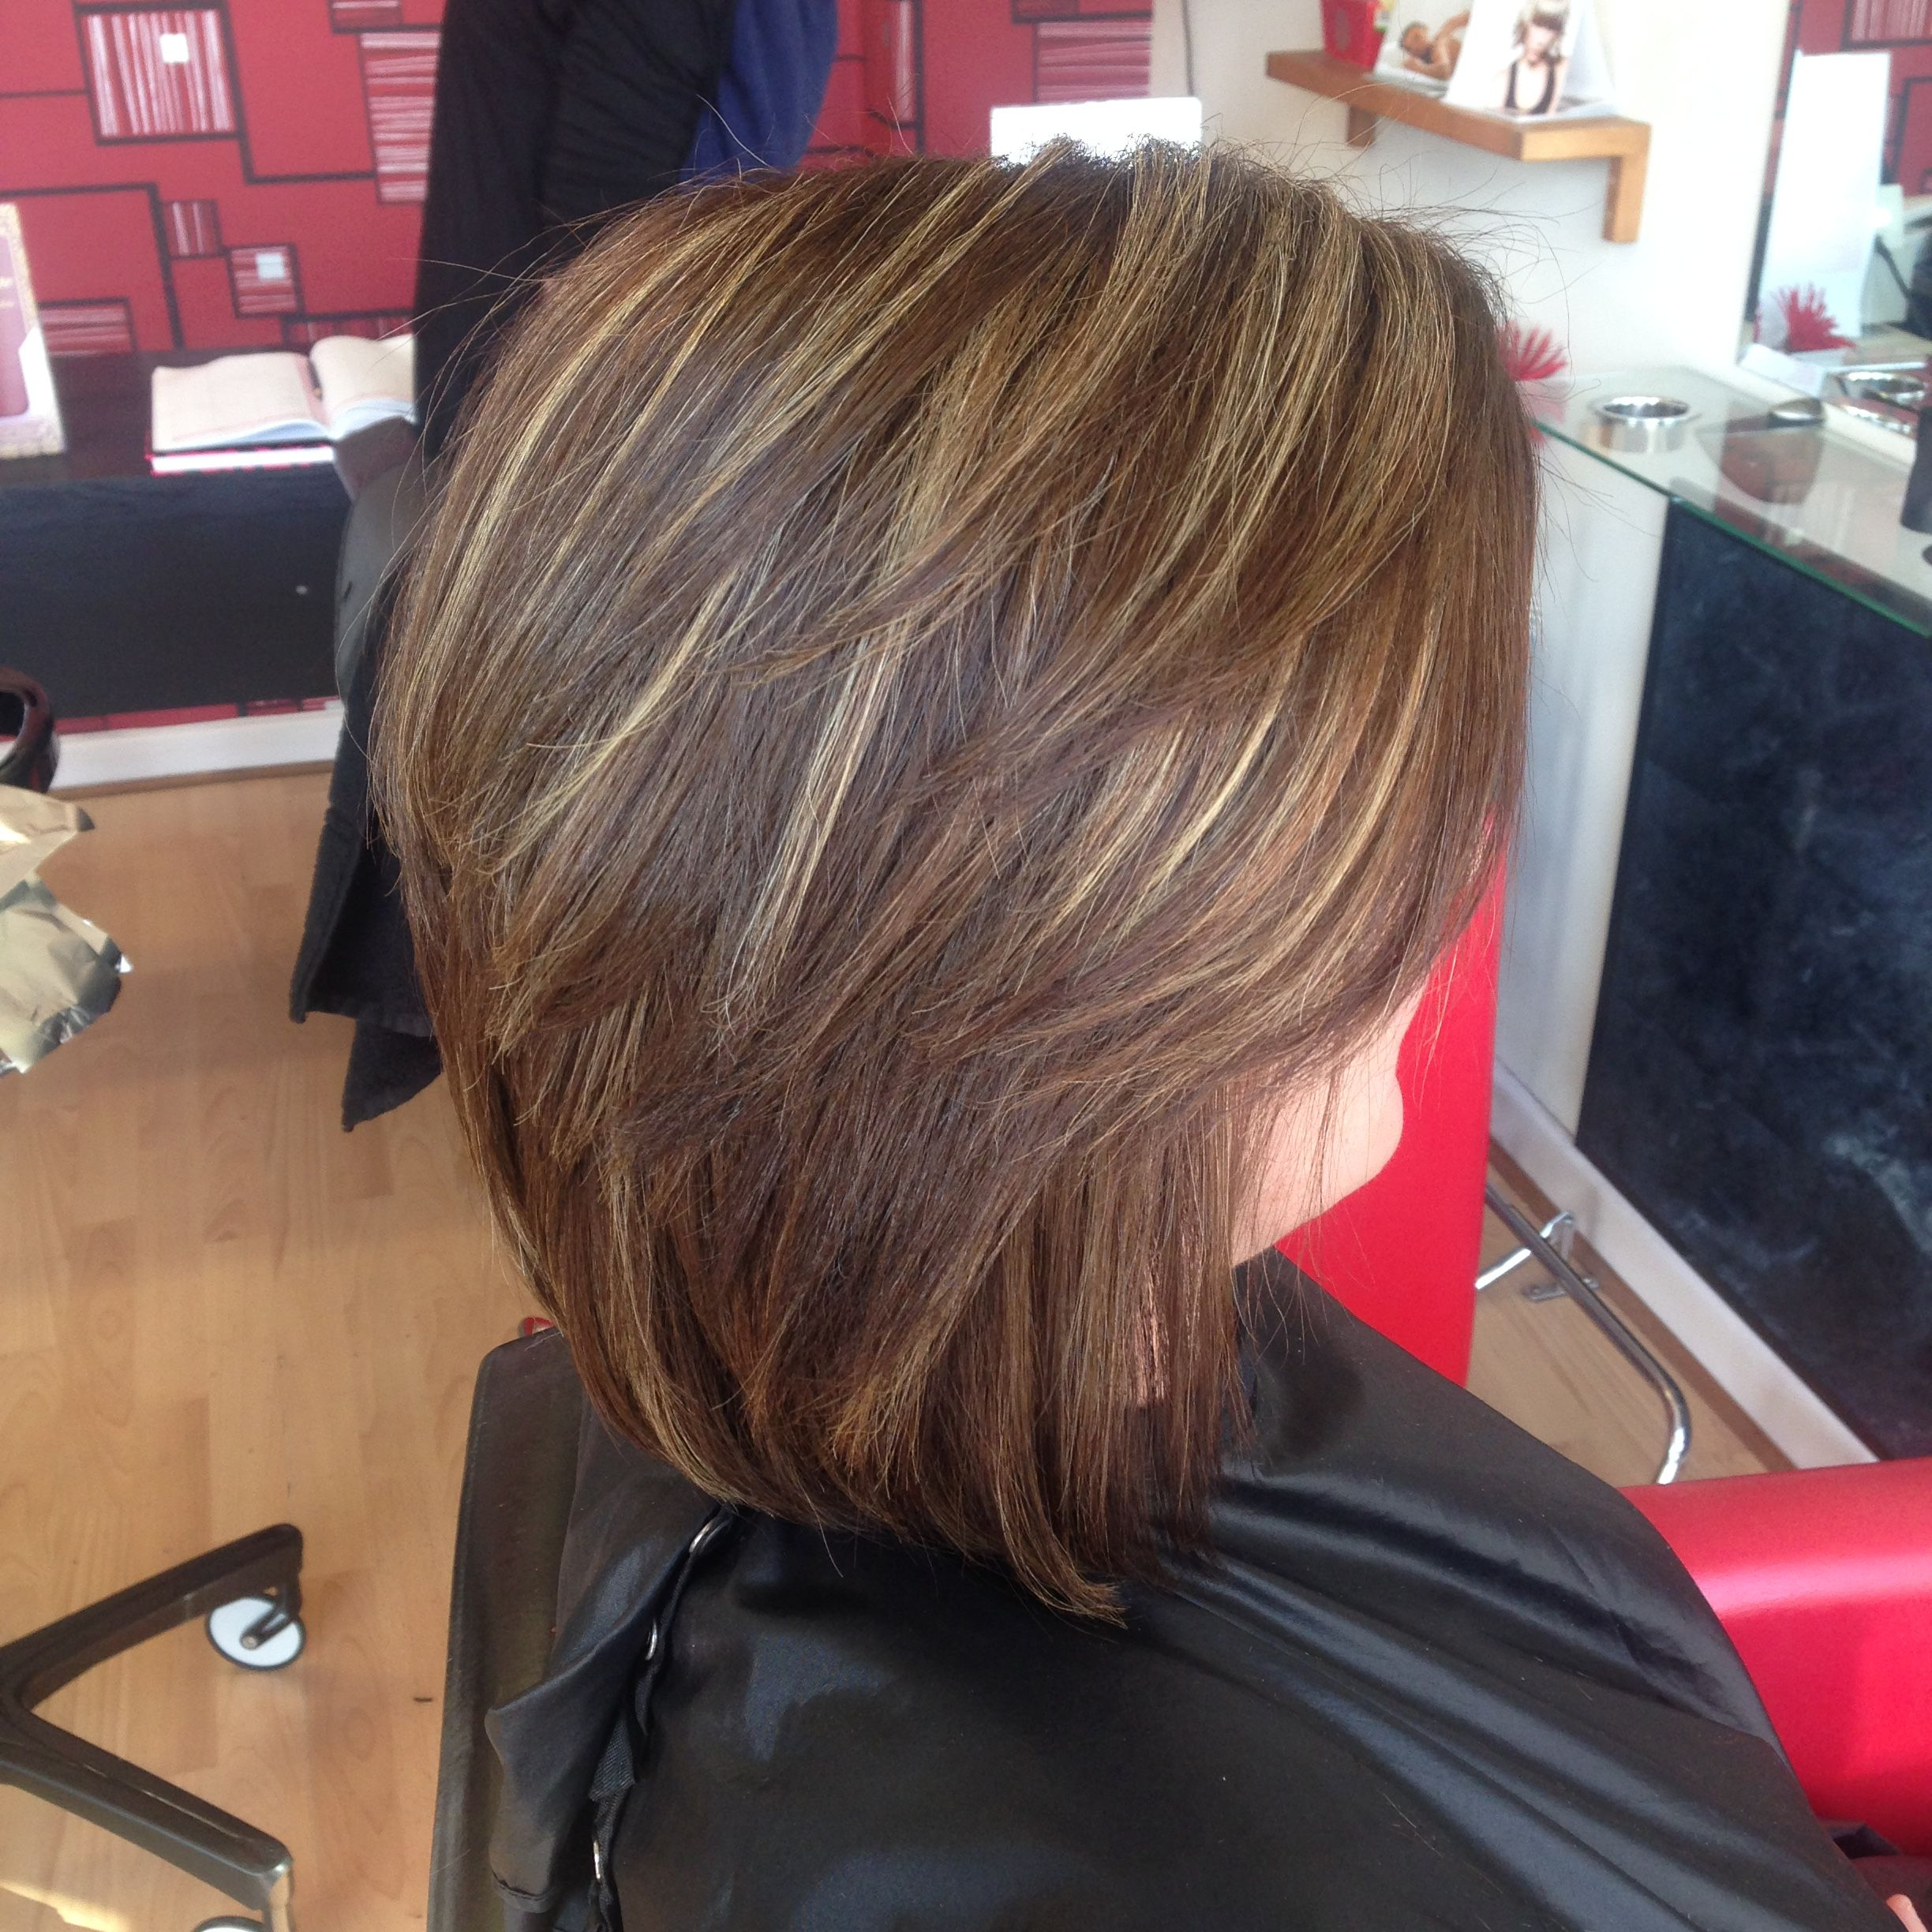 Beautiful Short Hair With A Natural Warm Medium Brown Base With Blonde Highlights Brown Hair Makeover Short Brown Hair Blonde Hair With Highlights